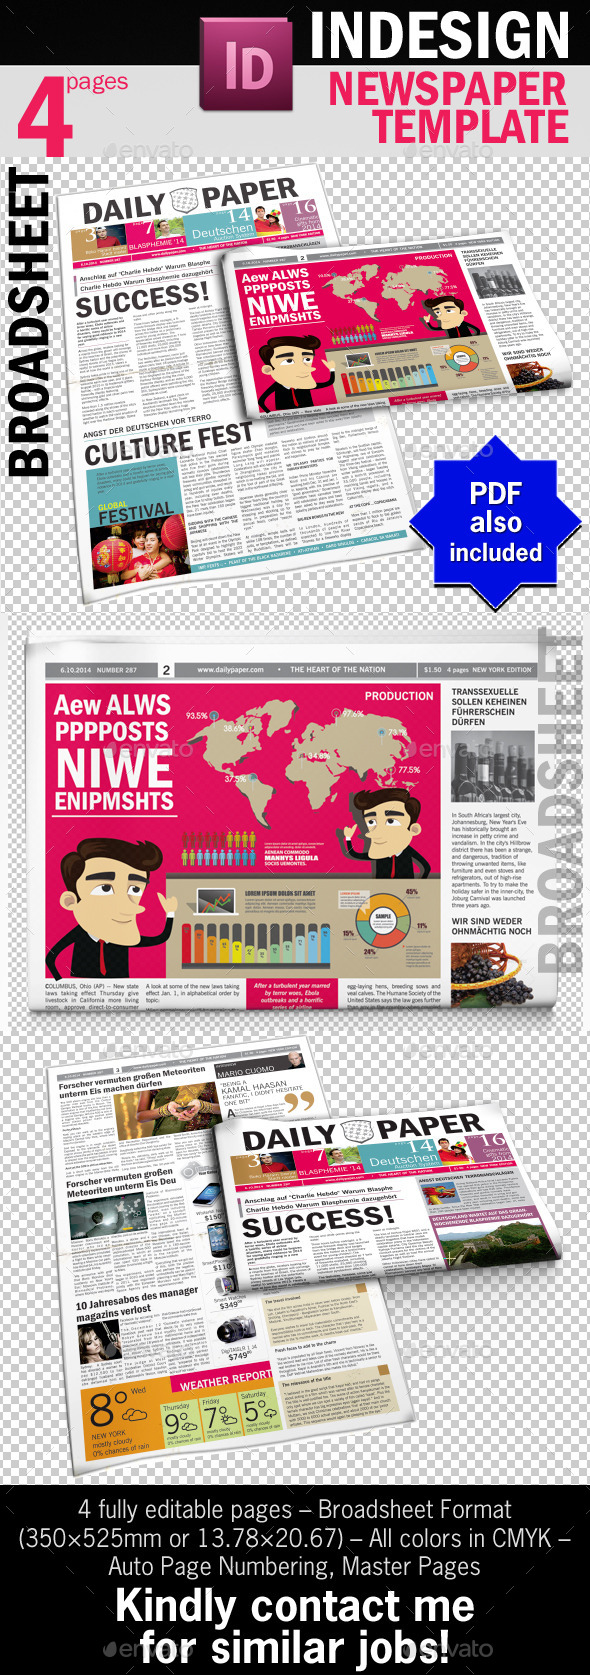 GraphicRiver DailyPaper Newspaper Template 9956032